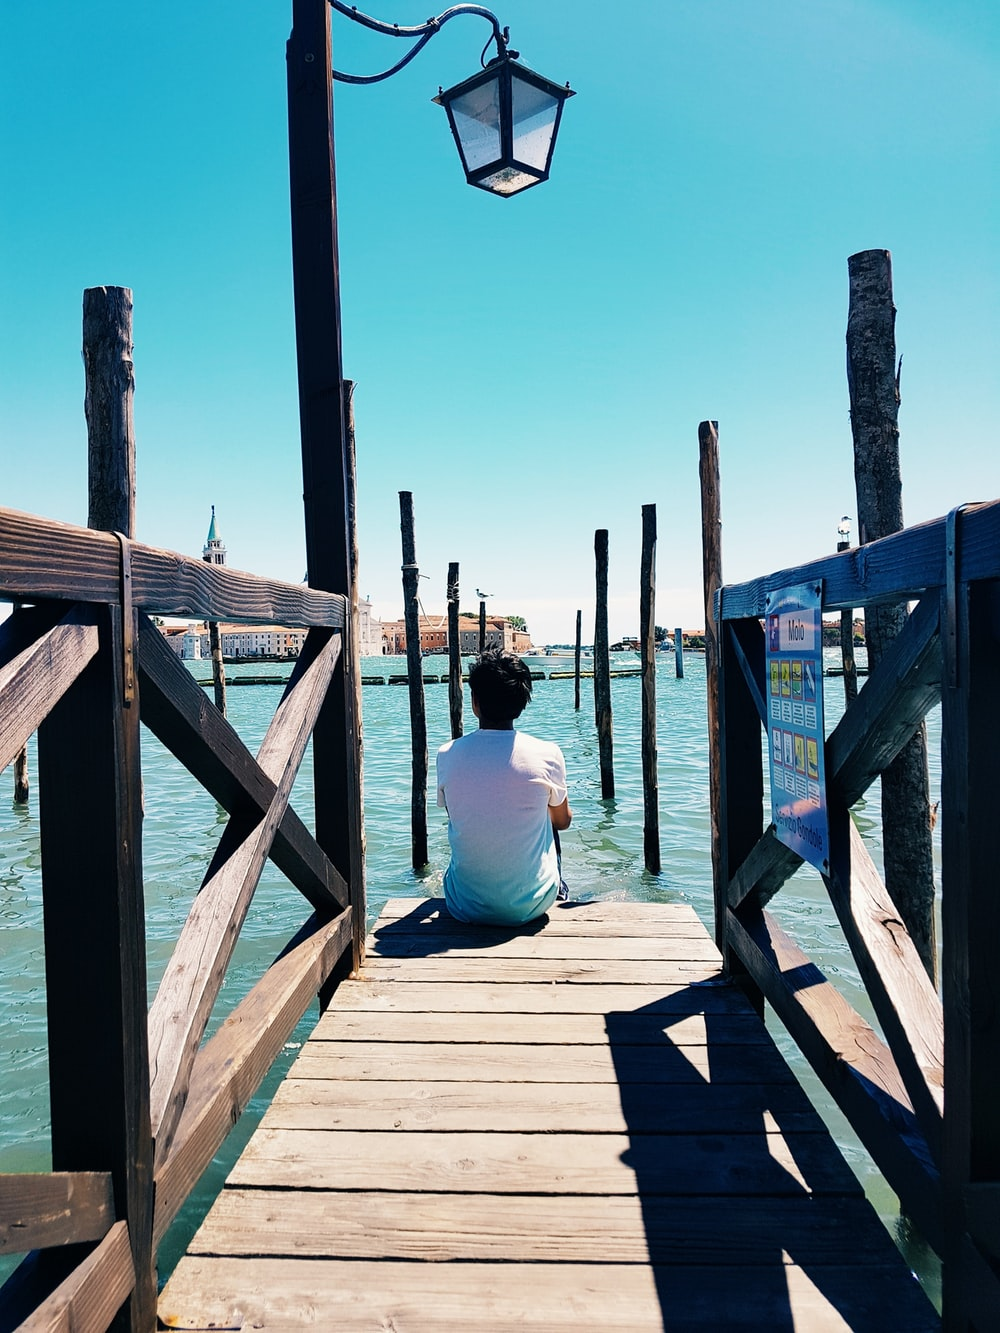 man in white t-shirt and blue denim jeans sitting on wooden dock during daytime